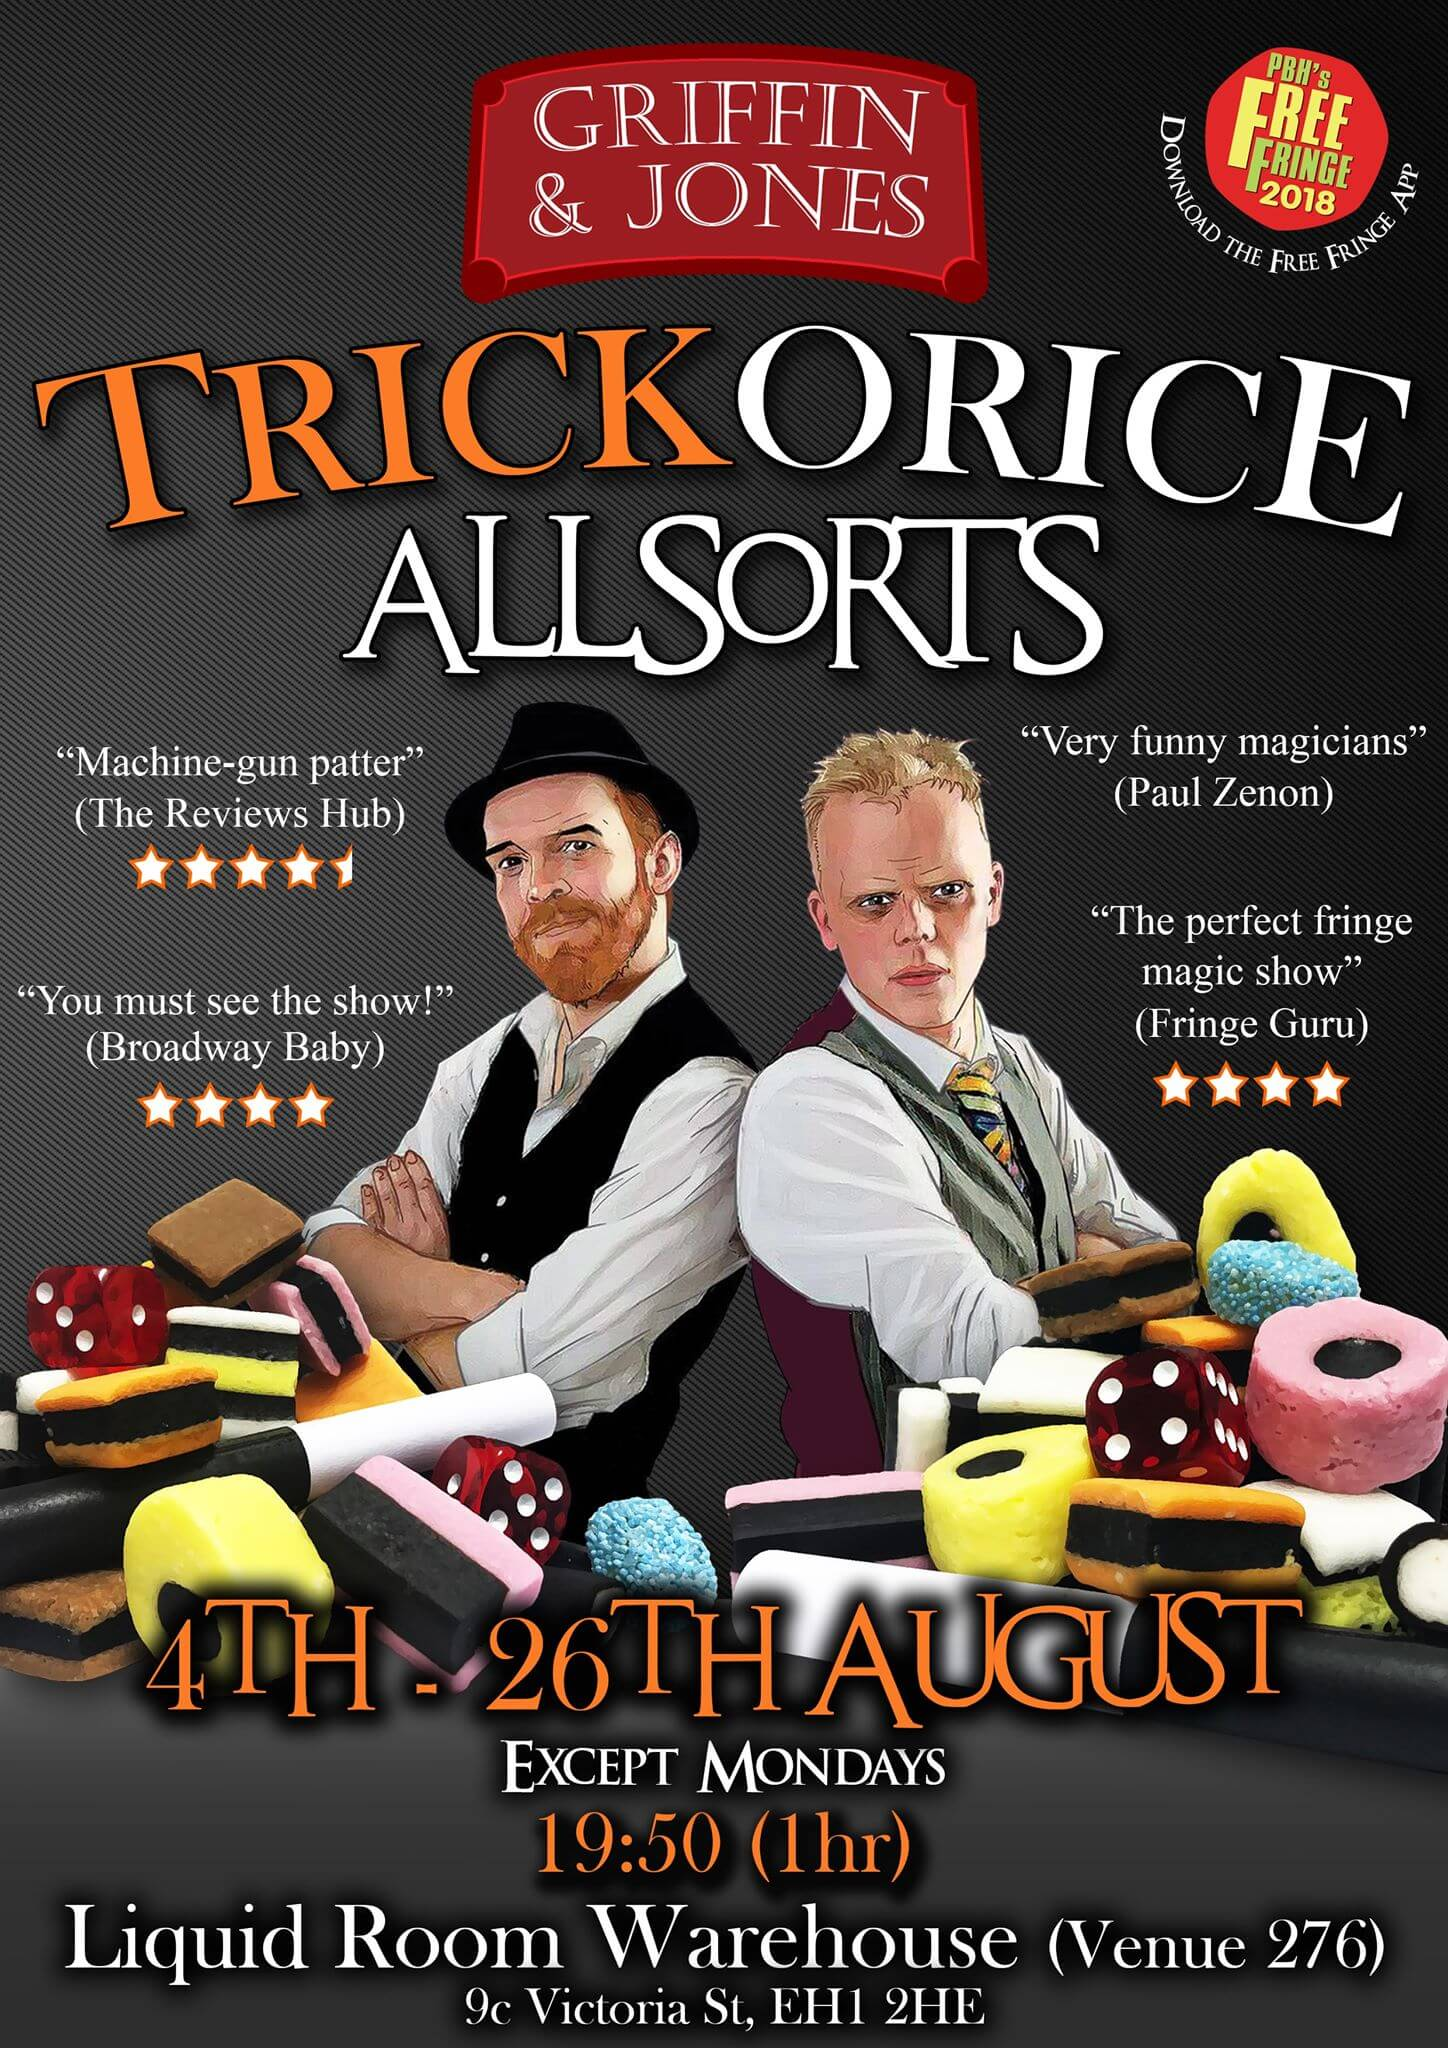 Griffin and Jones bring their edinburgh fringe magic show to Edfringe with Aaron Calvert